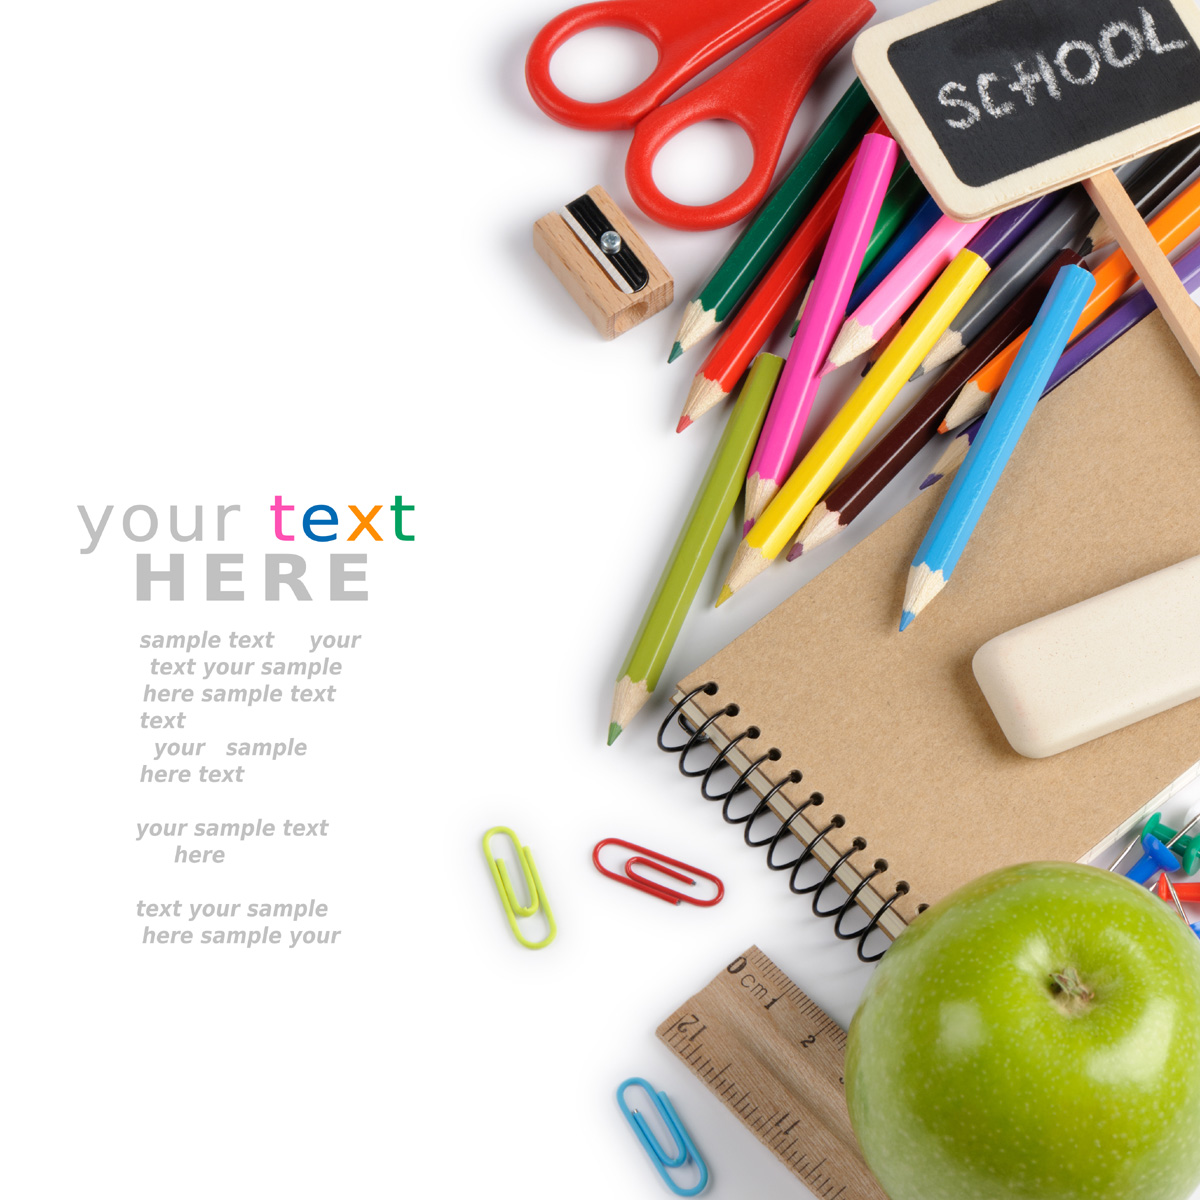 Color Stationery 30554 - Office stationery - Others